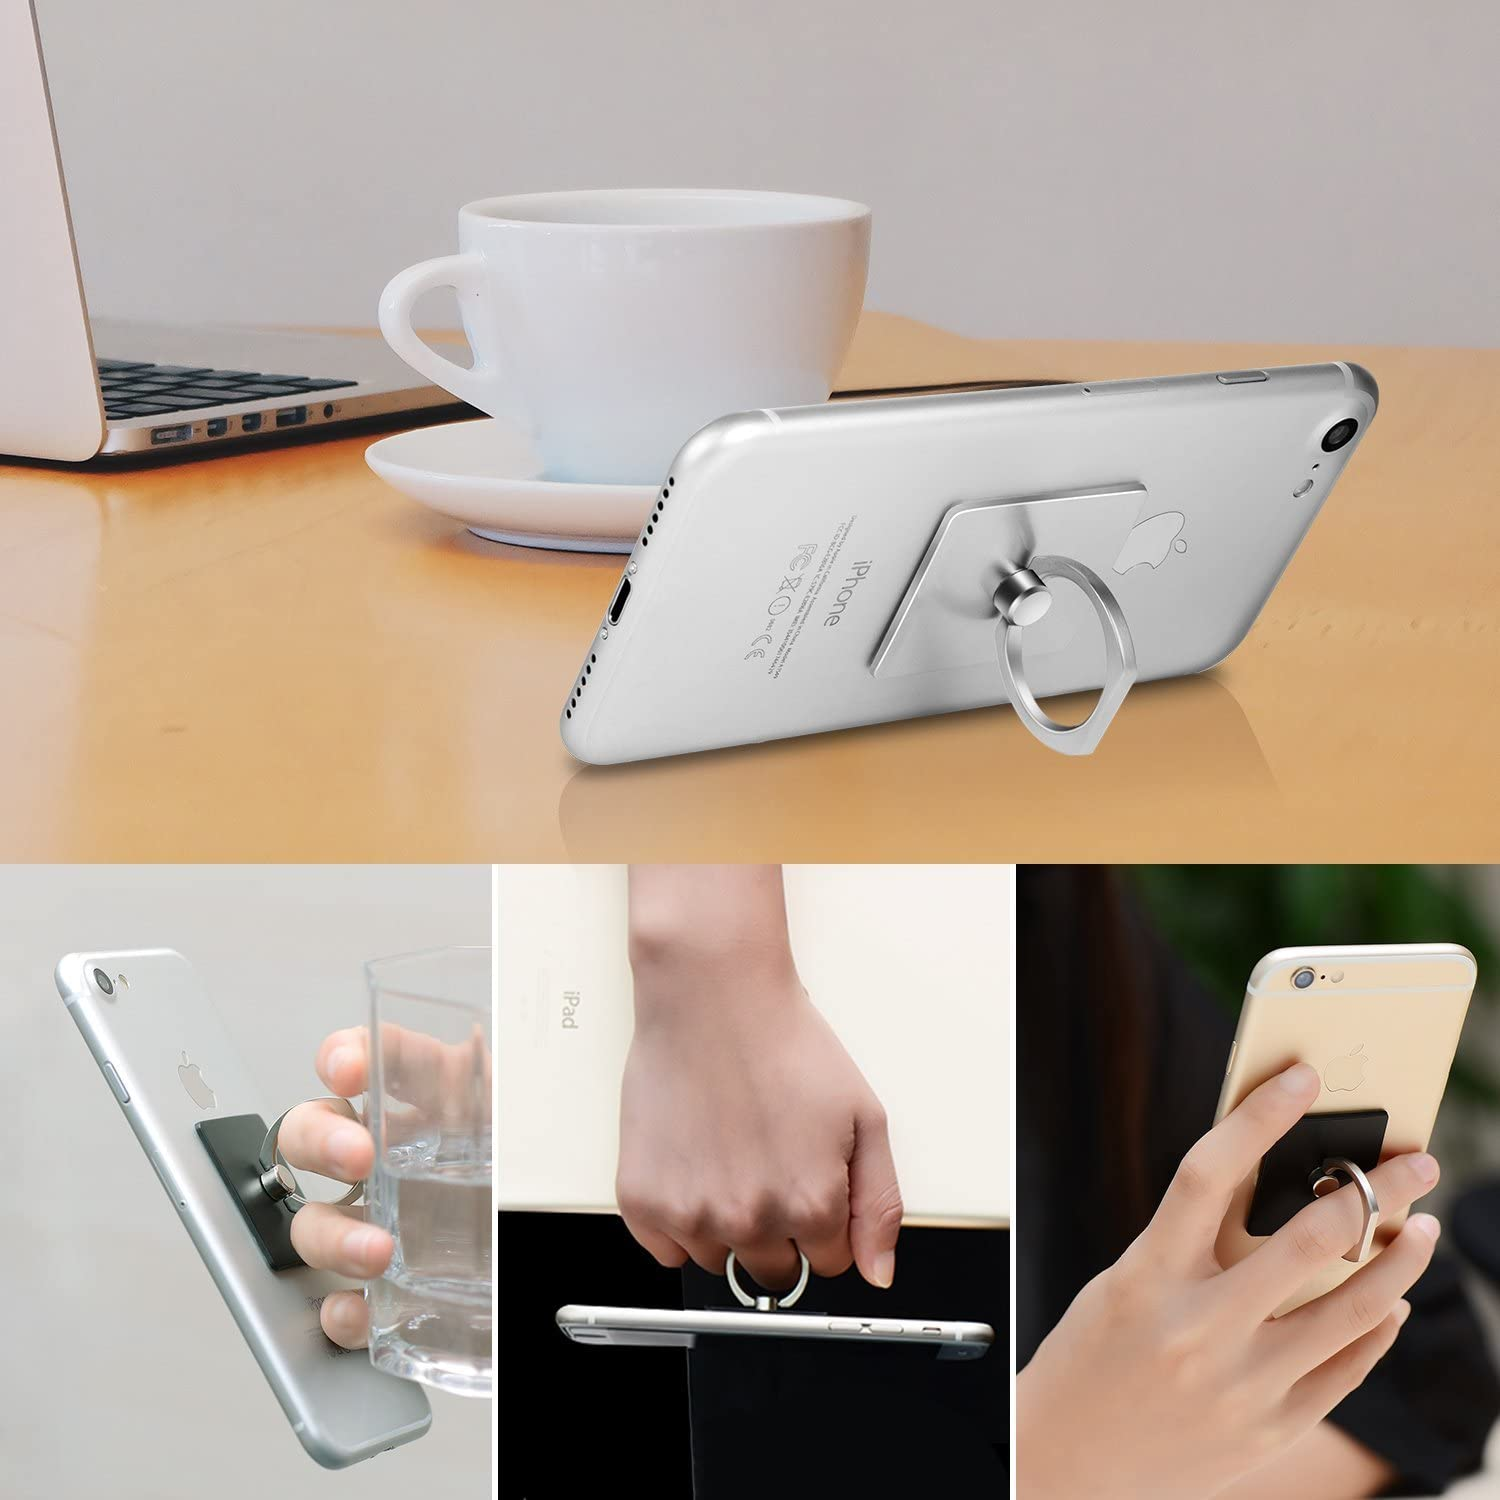 ELPMKIJN Cell Phone Finger Holder 360 Rotation Universal Smartphone Ring Grip Stand Car Mounts Phone Bracket Kickstand For Iphone Summer Llama